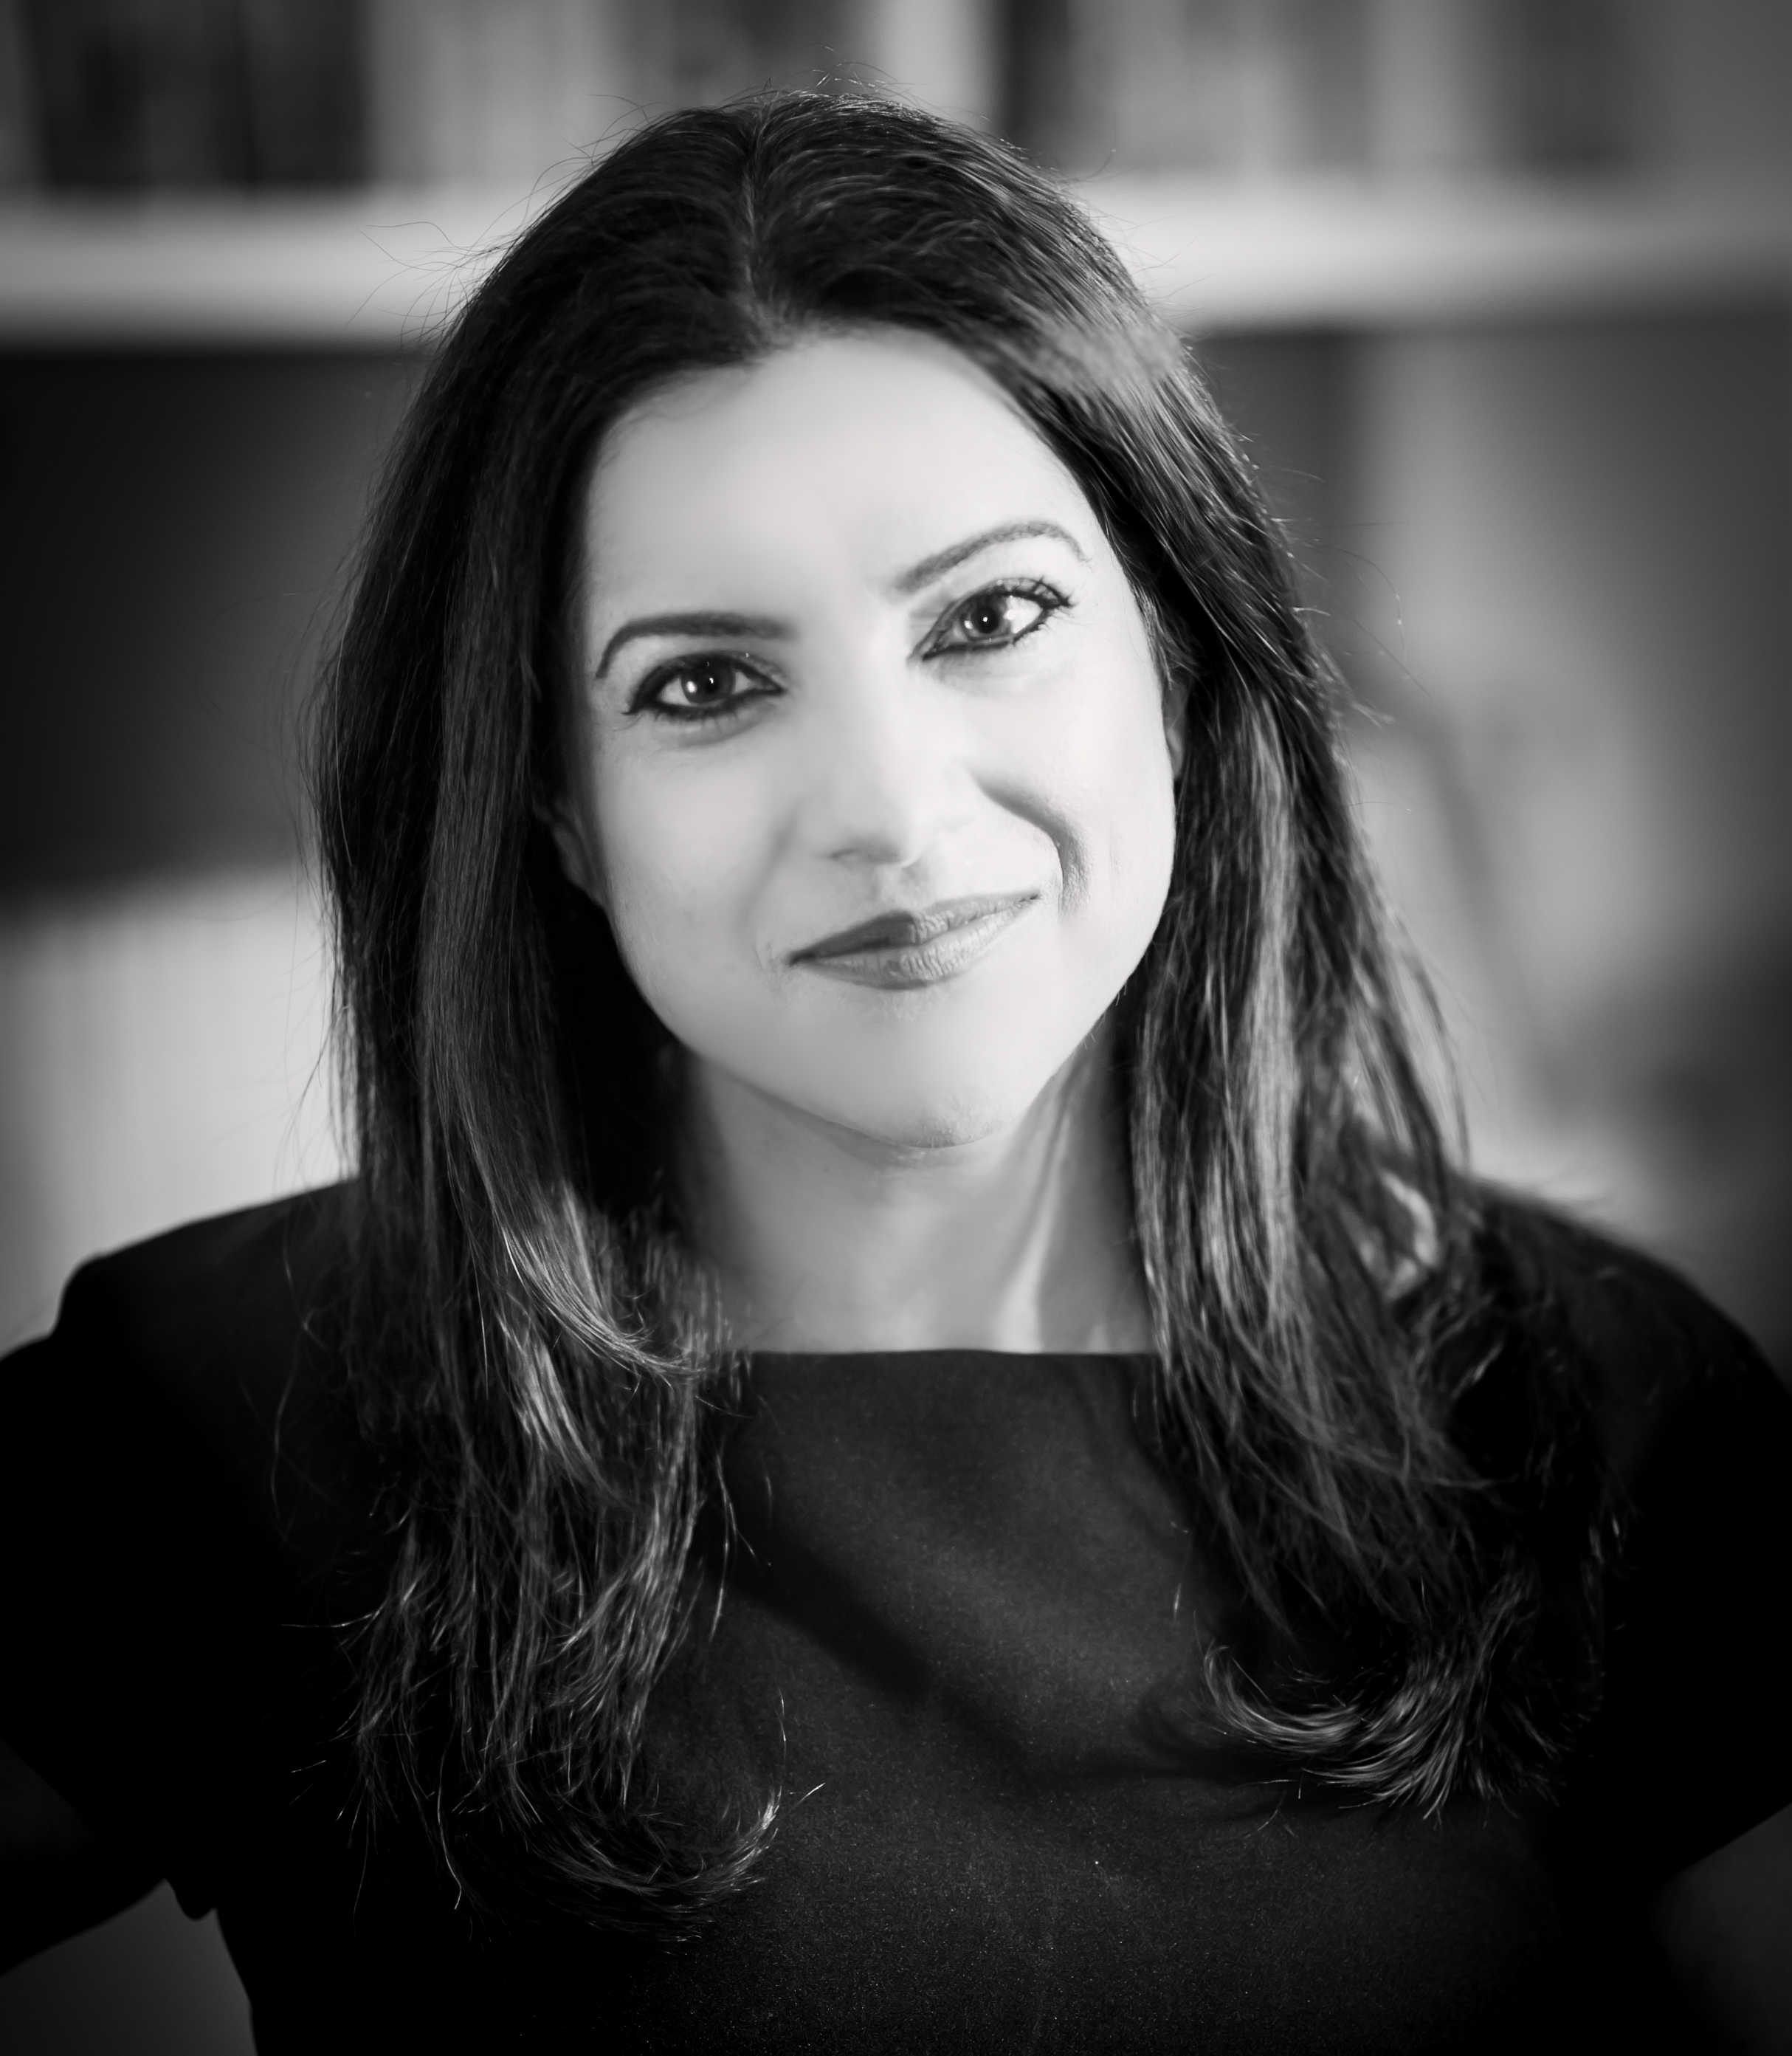 Reshma Saujani by Adrian Kinloch in NYC